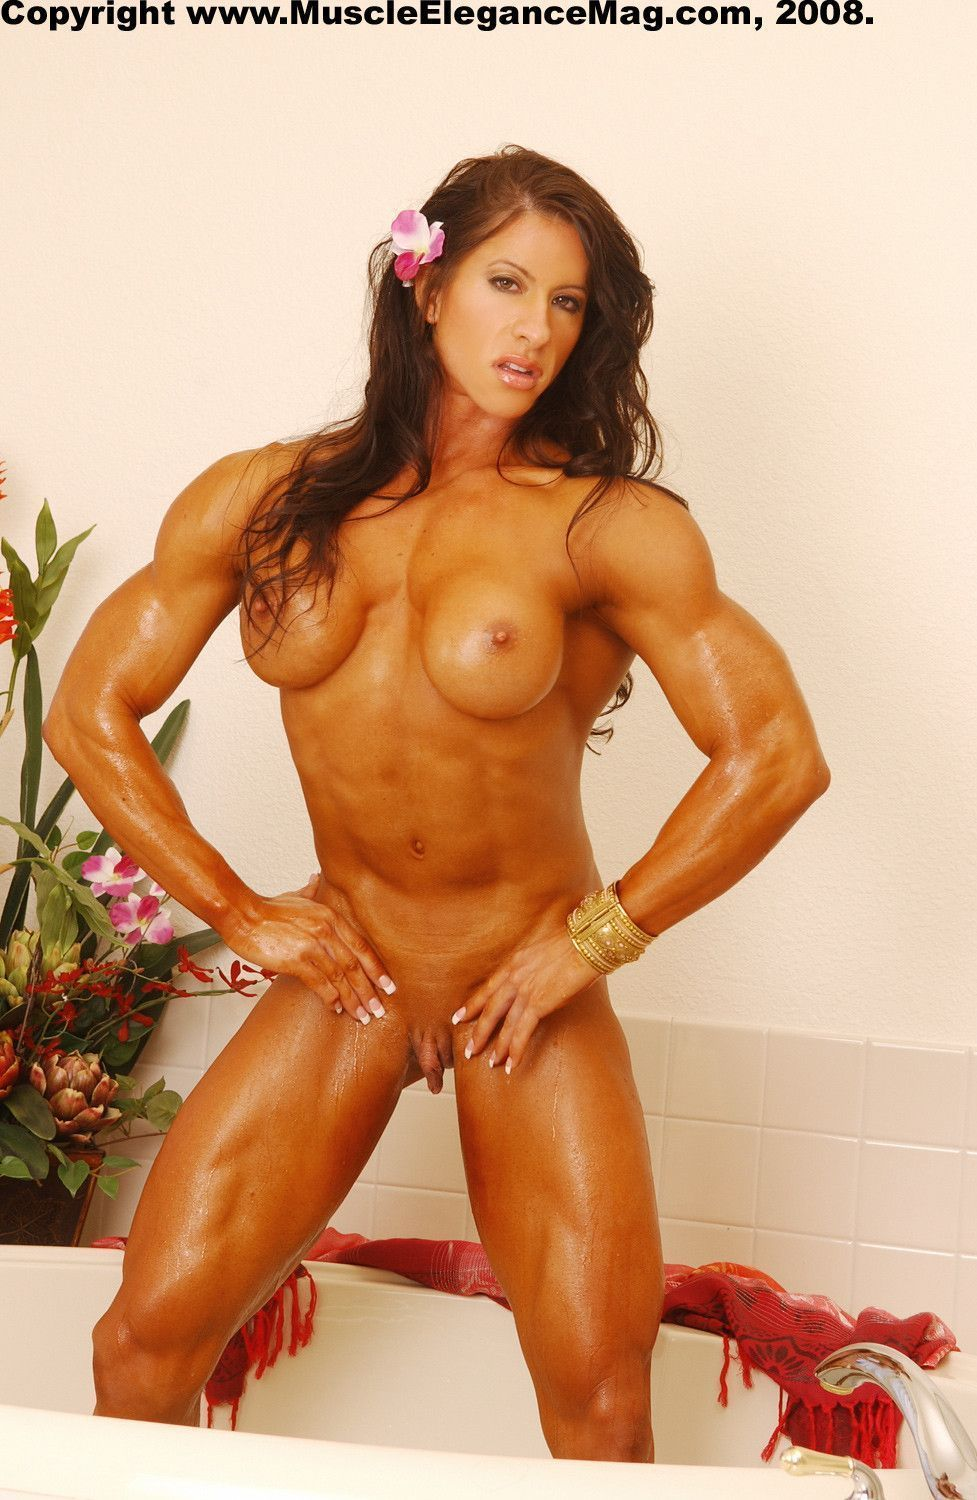 Remarkable, this Bodybuilder girls nude galleries